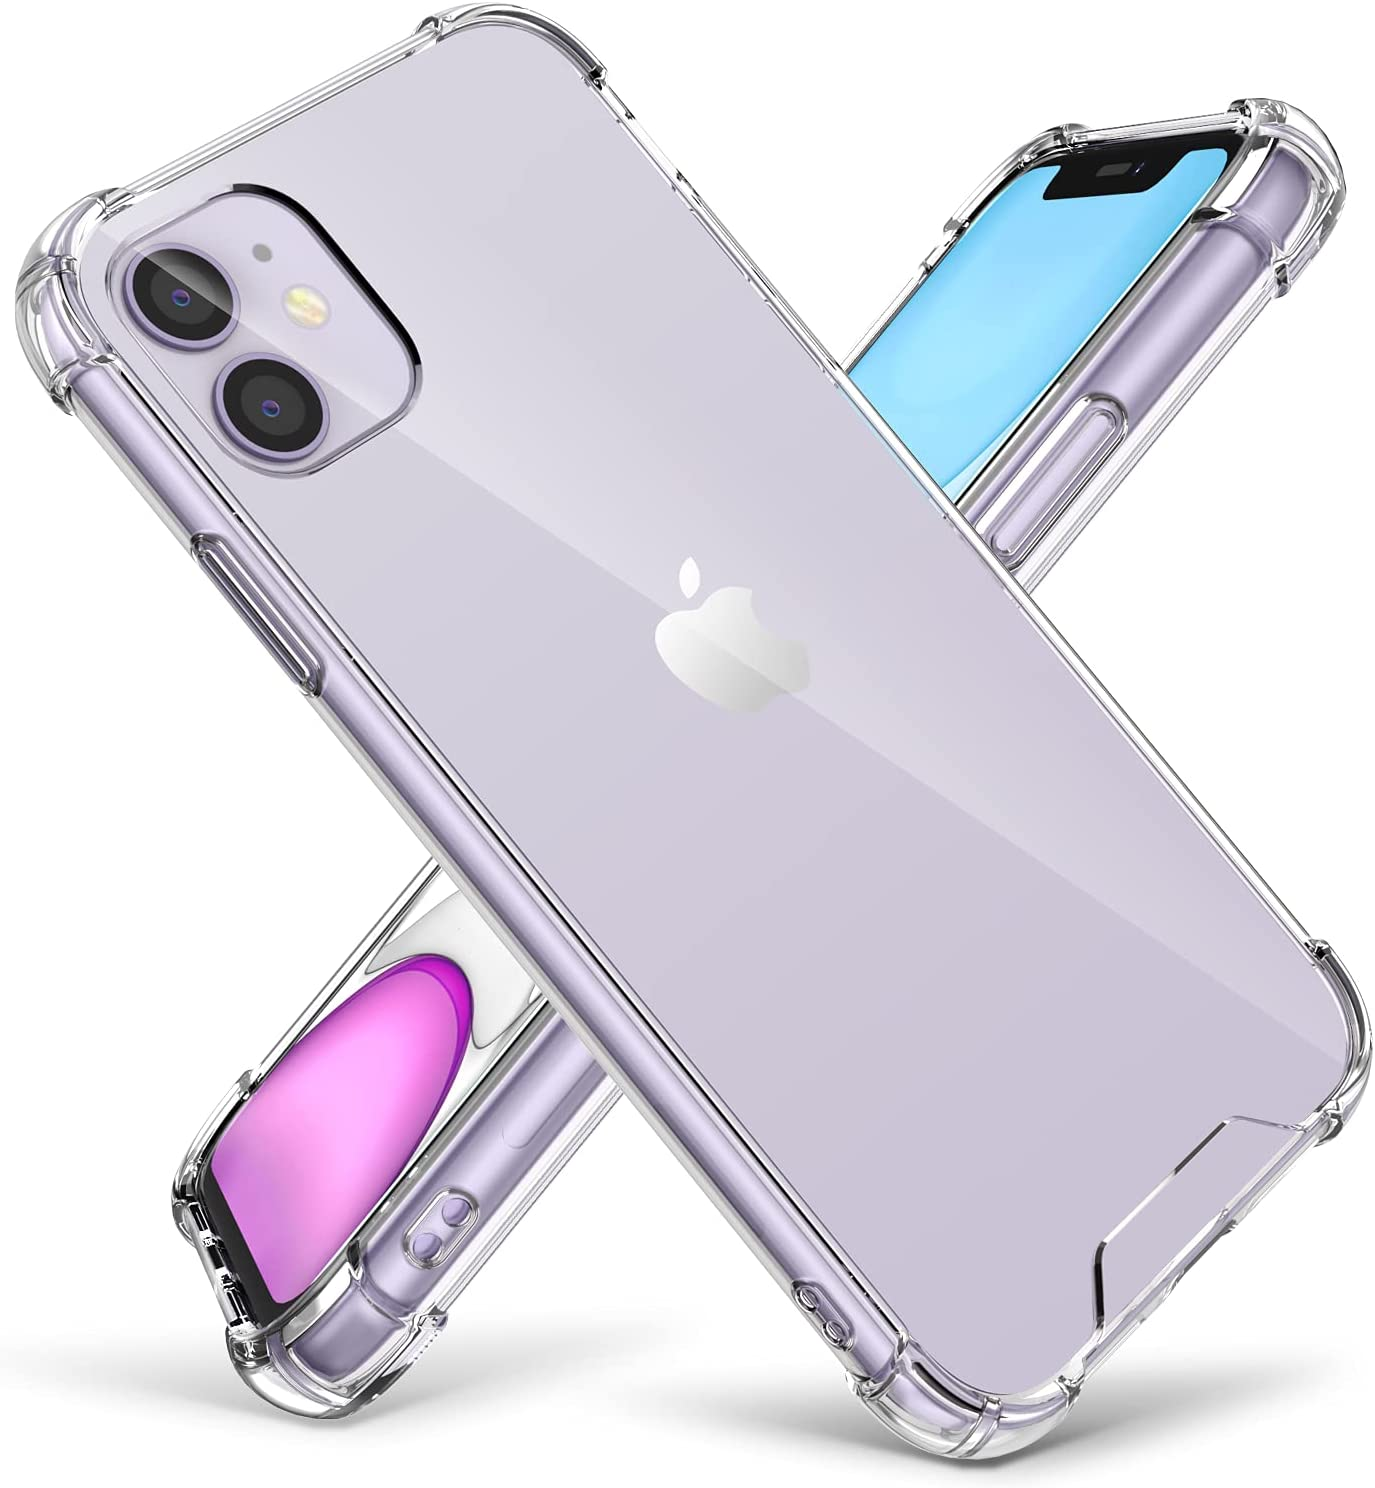 Cutebe Clear Case for iPhone 11,Cutebe Shockproof Series Hard PC+ TPU Bumper Protective Cover for iPhone 11 6.1 Inch (Crystal Design)